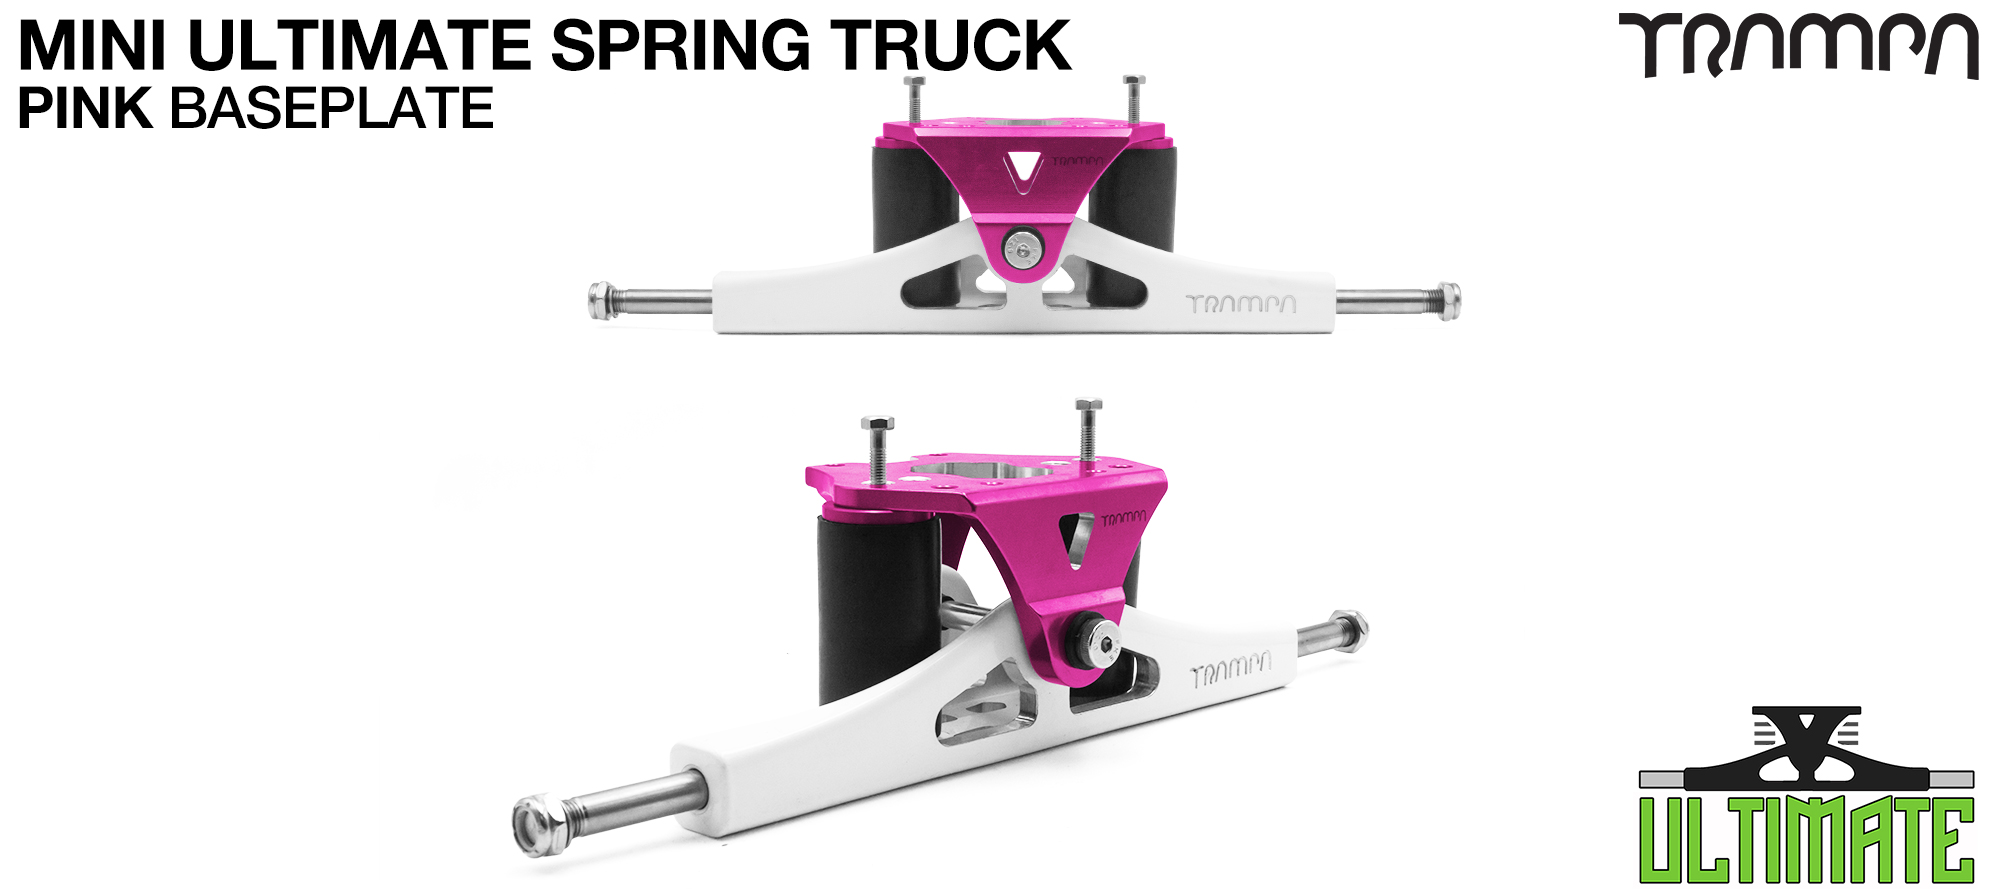 Mini ULTIMATE TRAMPA TRUCKS - CNC FORGED Channel Hanger with 9.525mm TITANIUM Axle CNC Baseplate TITANIUM Kingpin - PINK